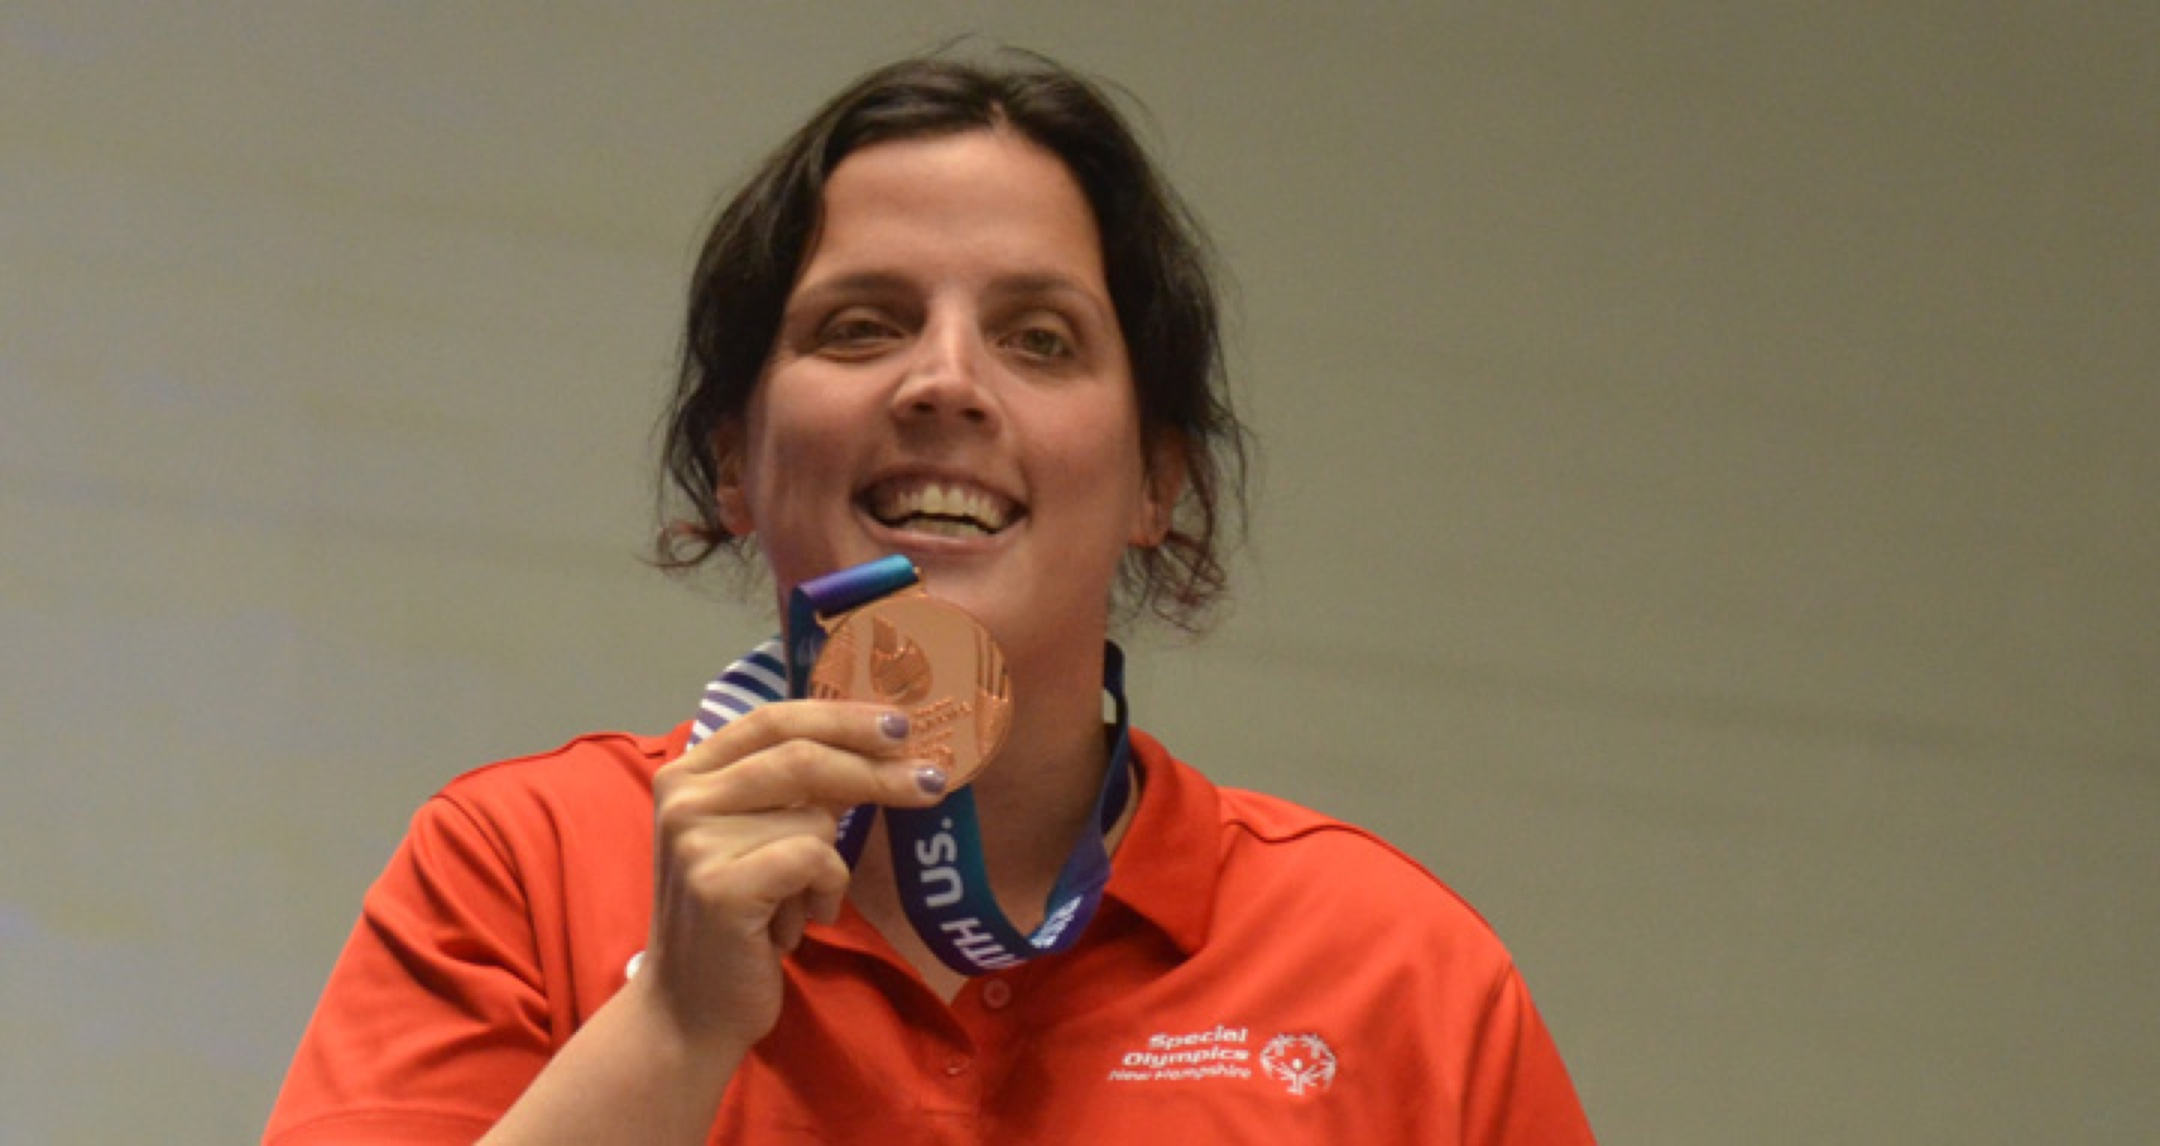 Athlete proudly smiling while holding up a medal